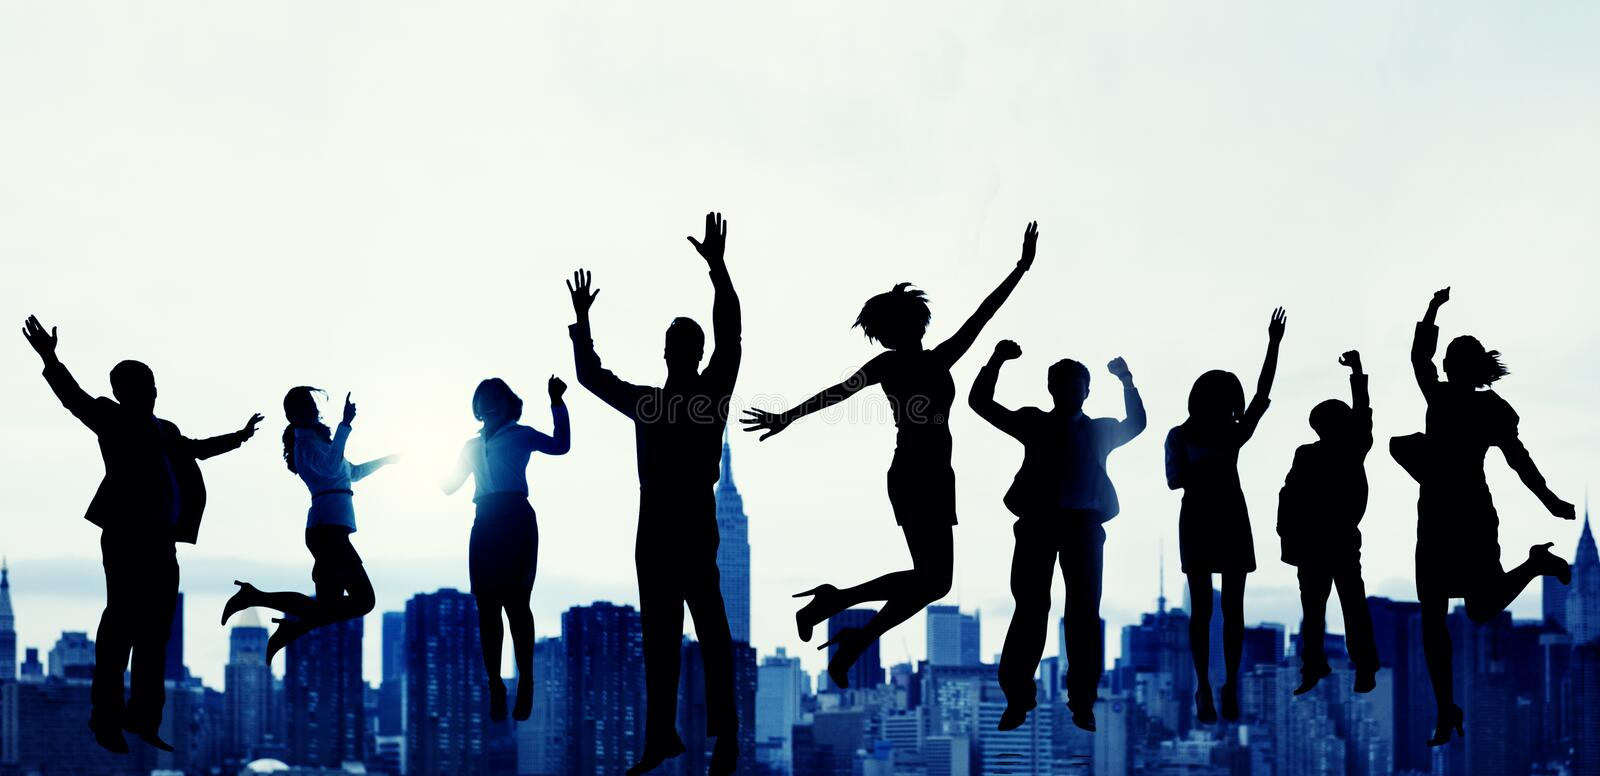 Business People Success Excitement Victory Achievement Concept.  royalty free stock images